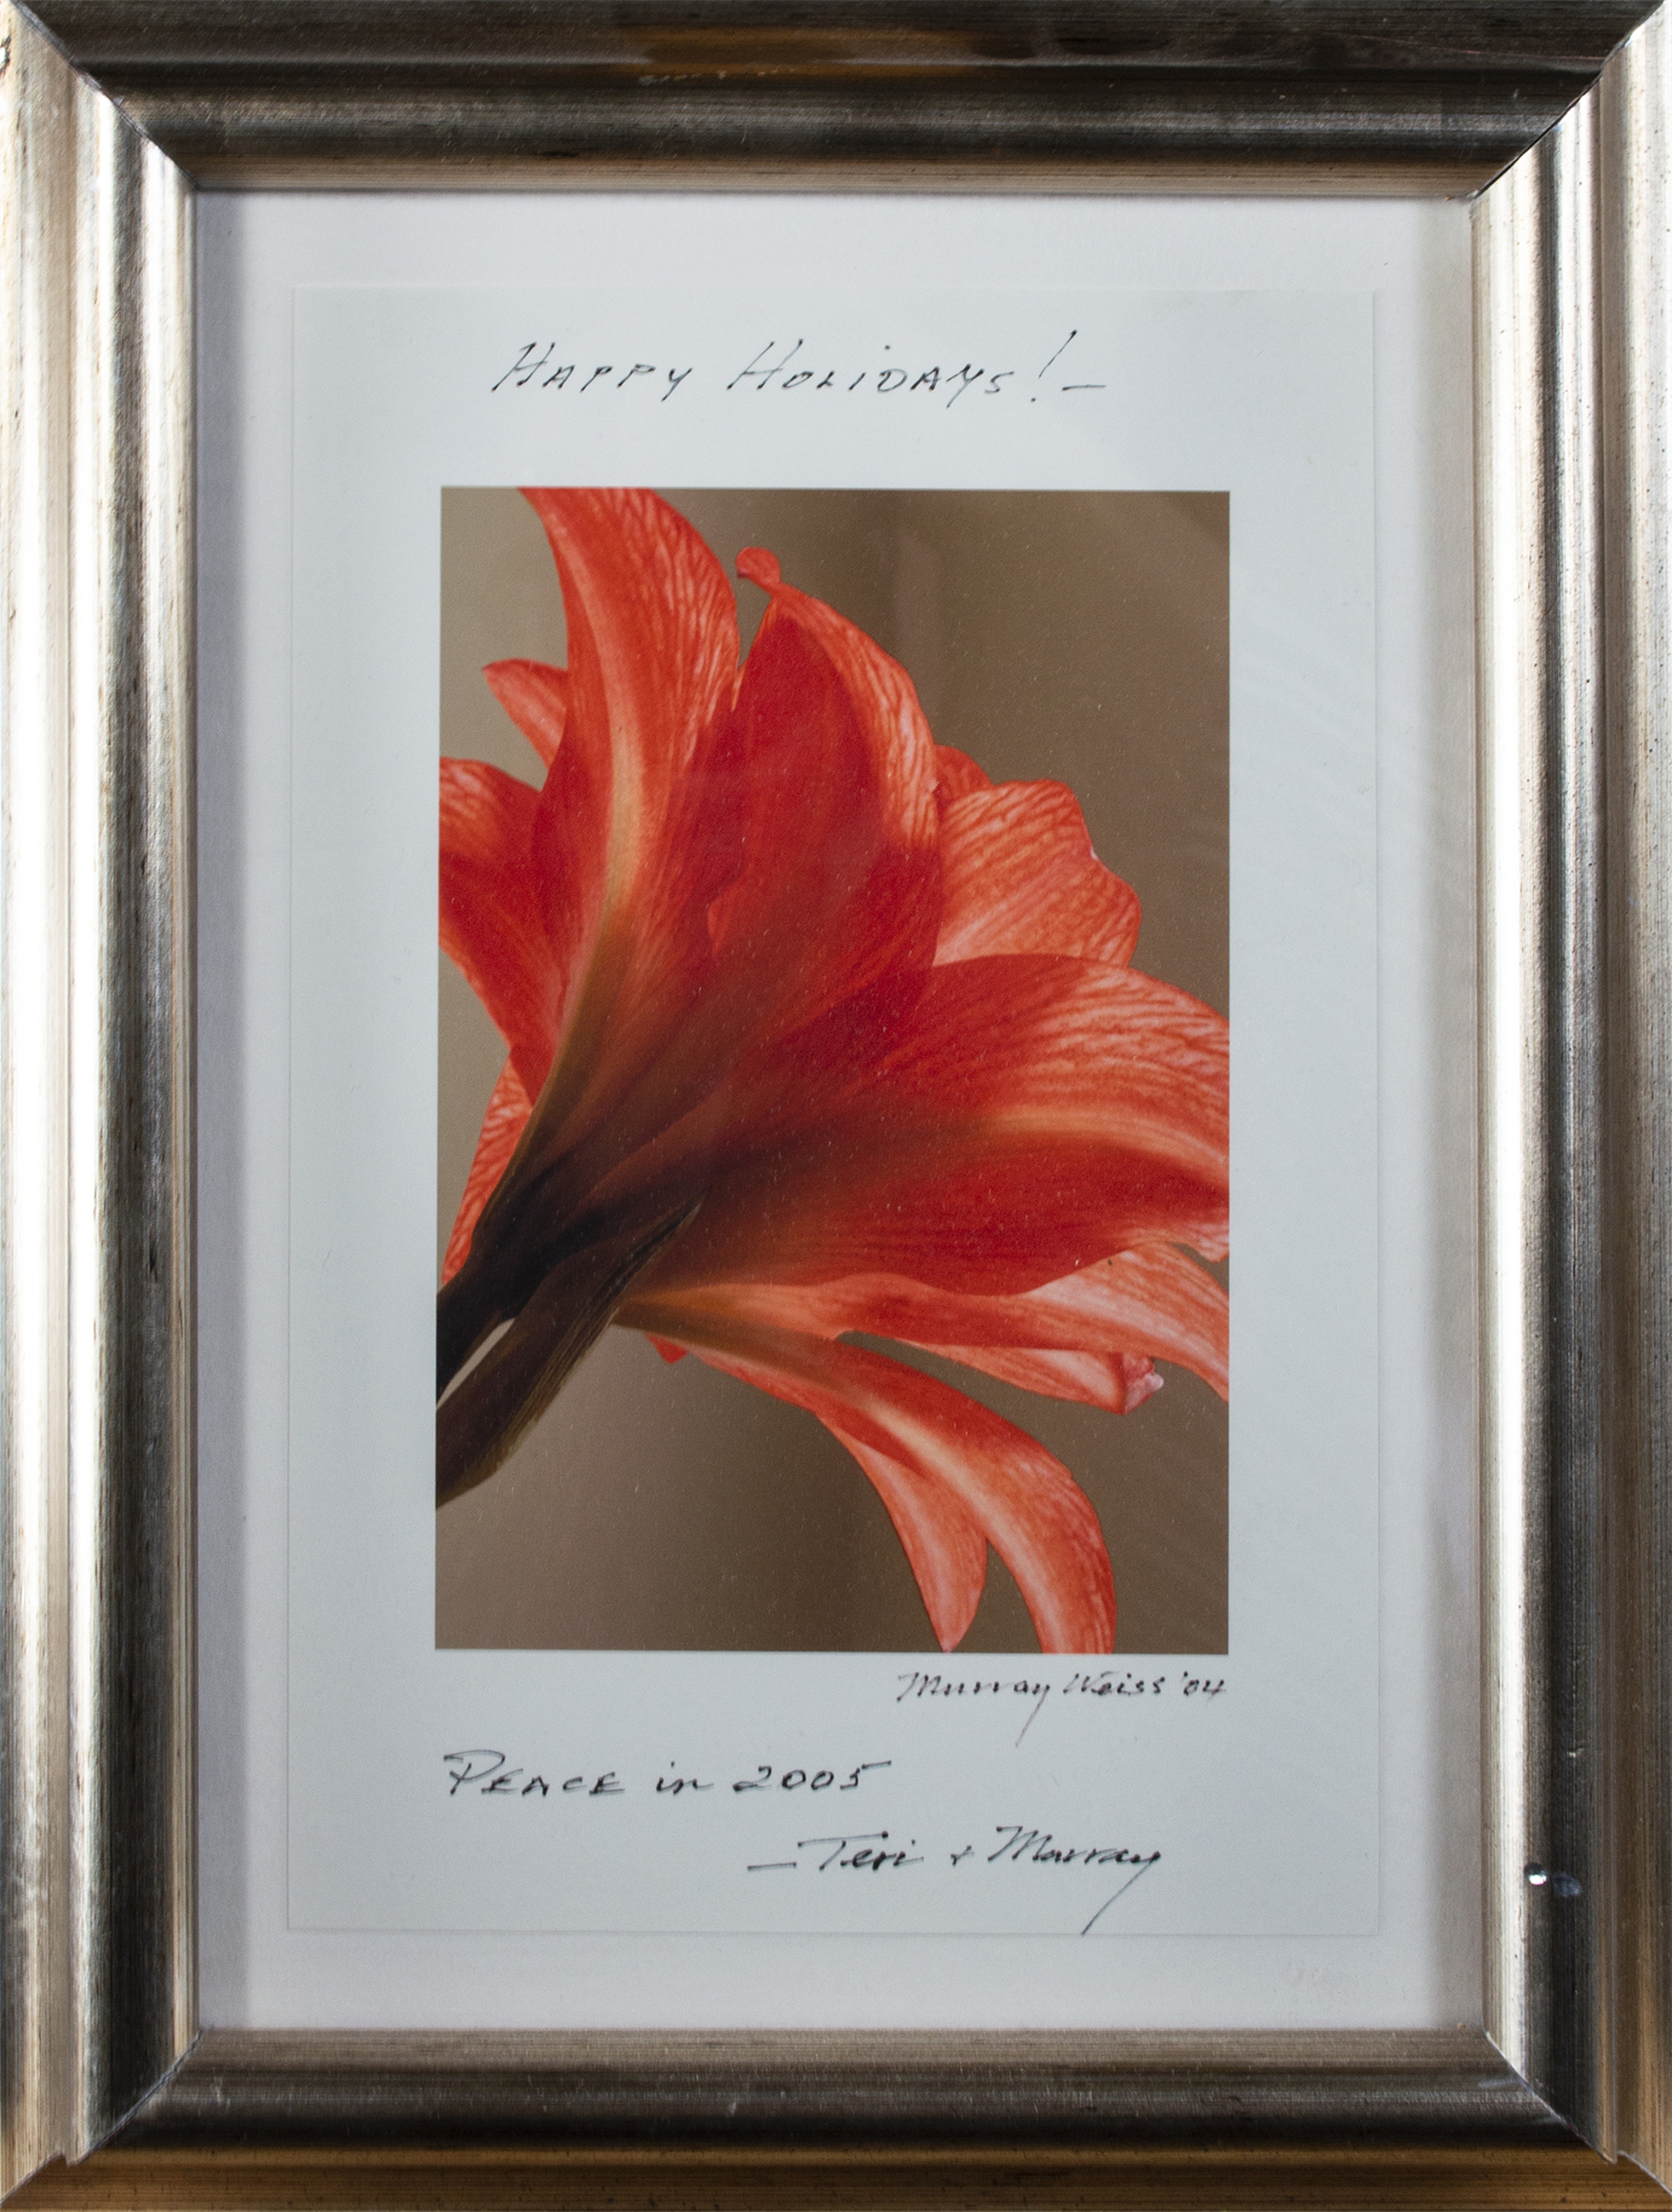 """Red Orange Flower, inscribed """"Happy Holidays! - Peace in 2005 - Teri & Murray"""" by Murray Weiss"""